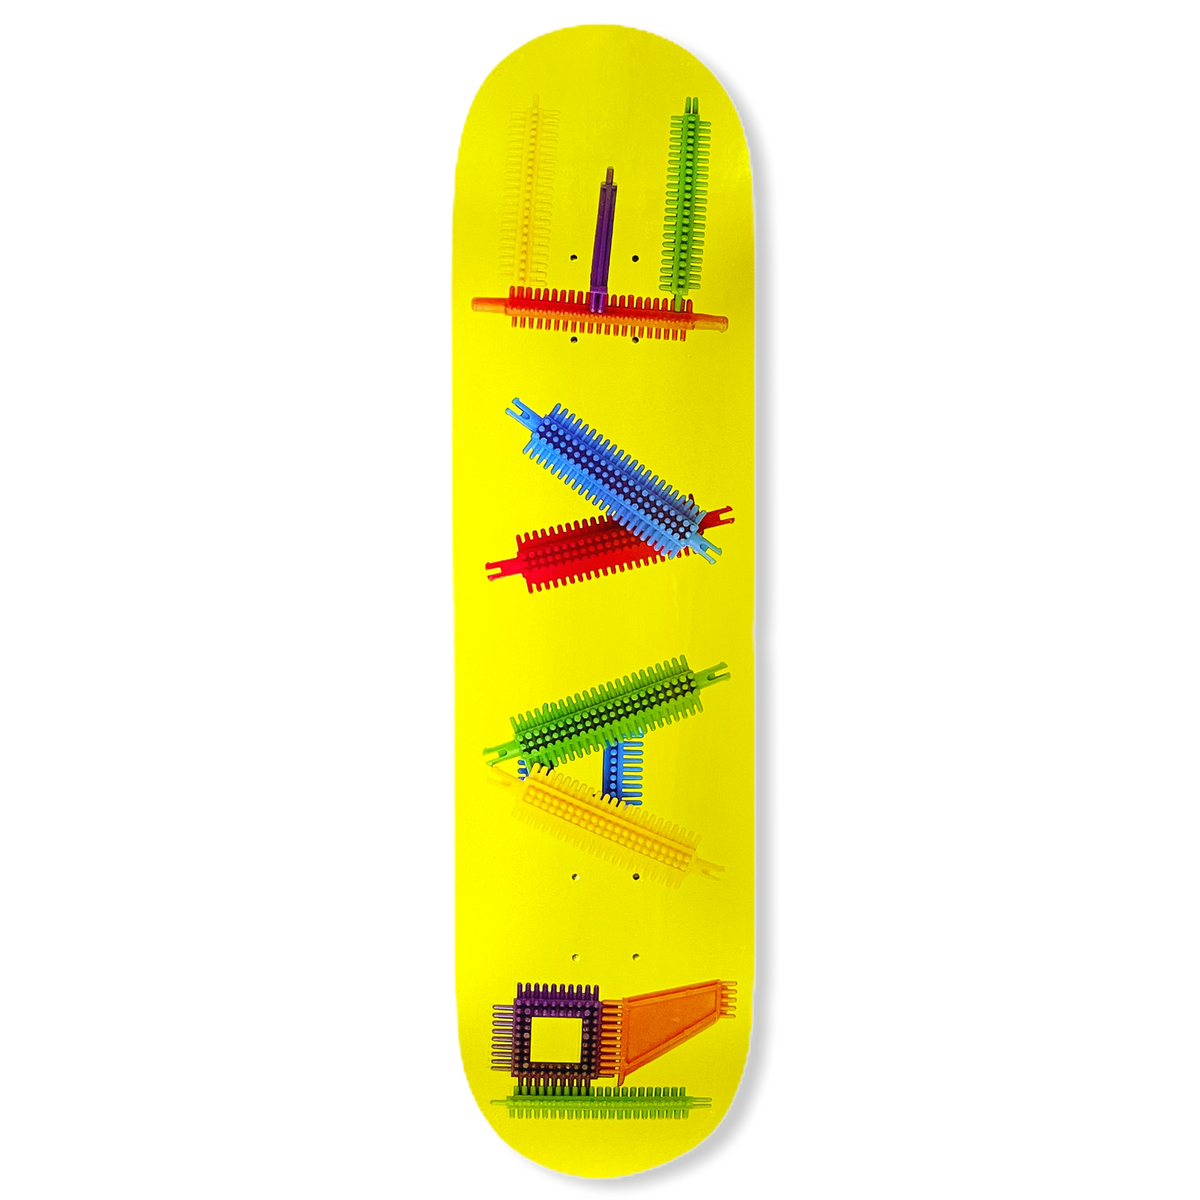 CLIPO YELLOW board - RAVE skateboards